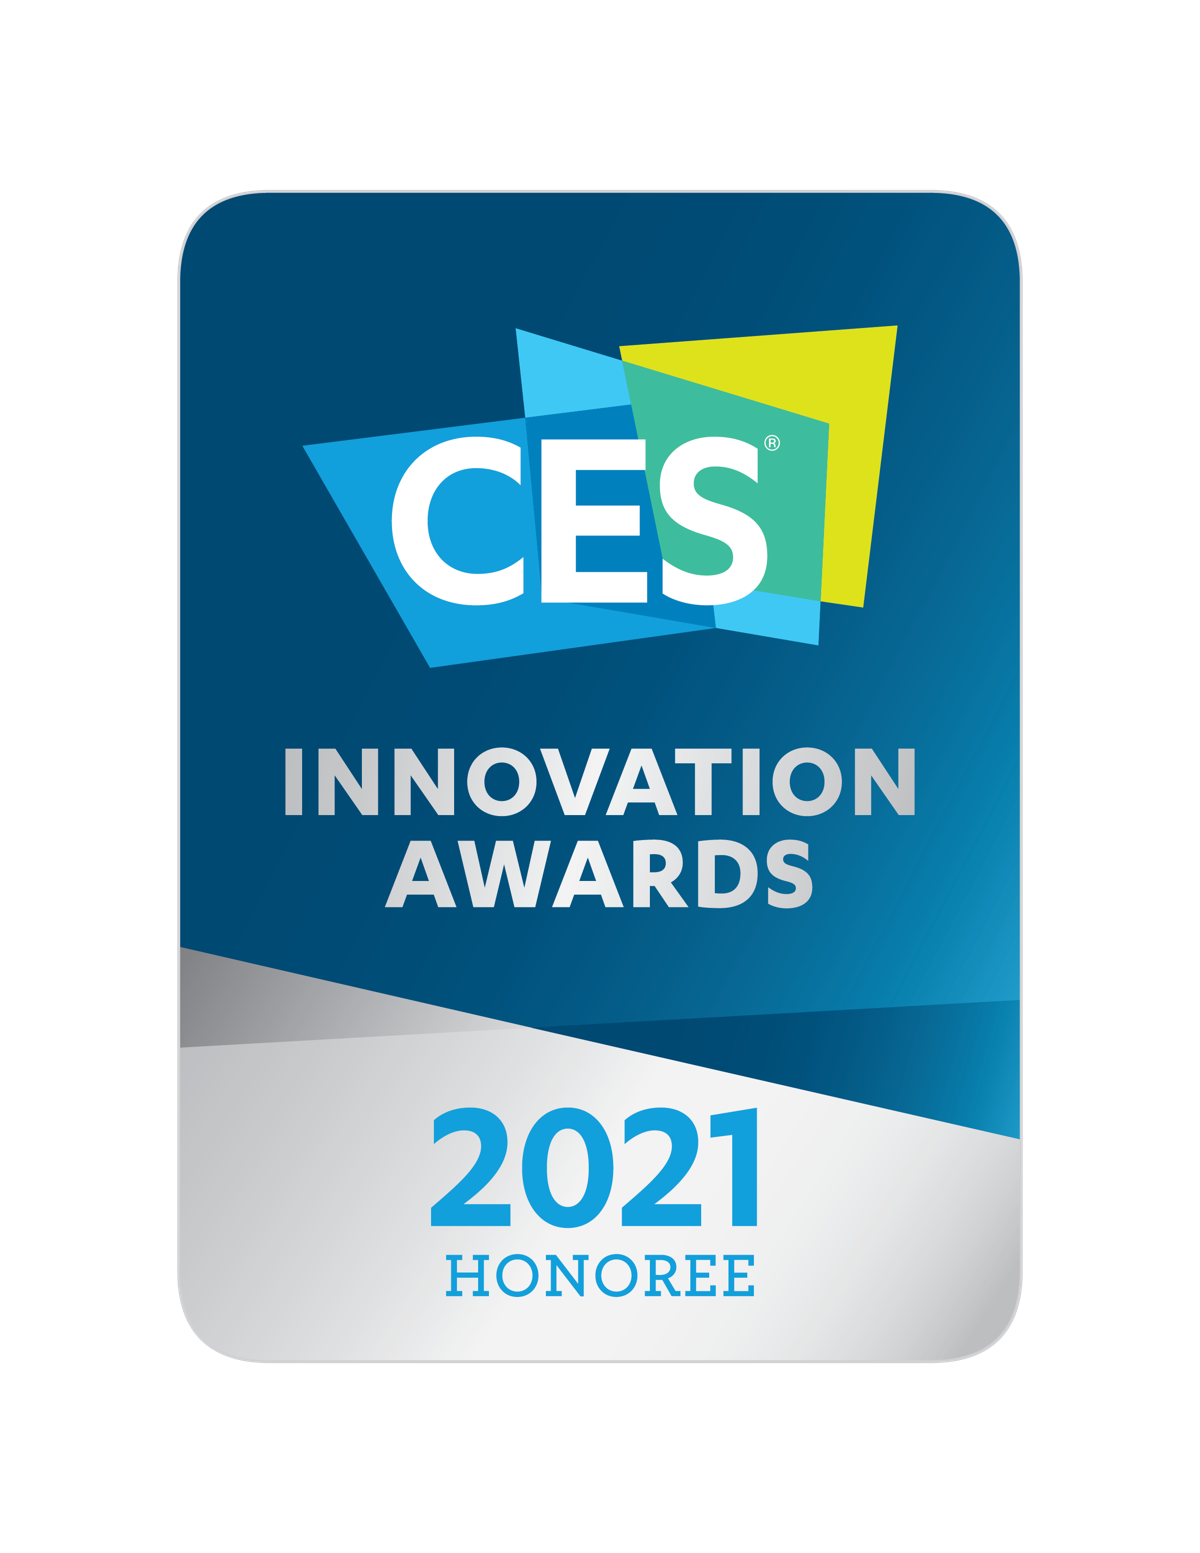 Sennheiser's and Continental's speakerless immersive audio solution received a CES Innovation Award 2021 in the In-Vehicle Entertainment and Safety category